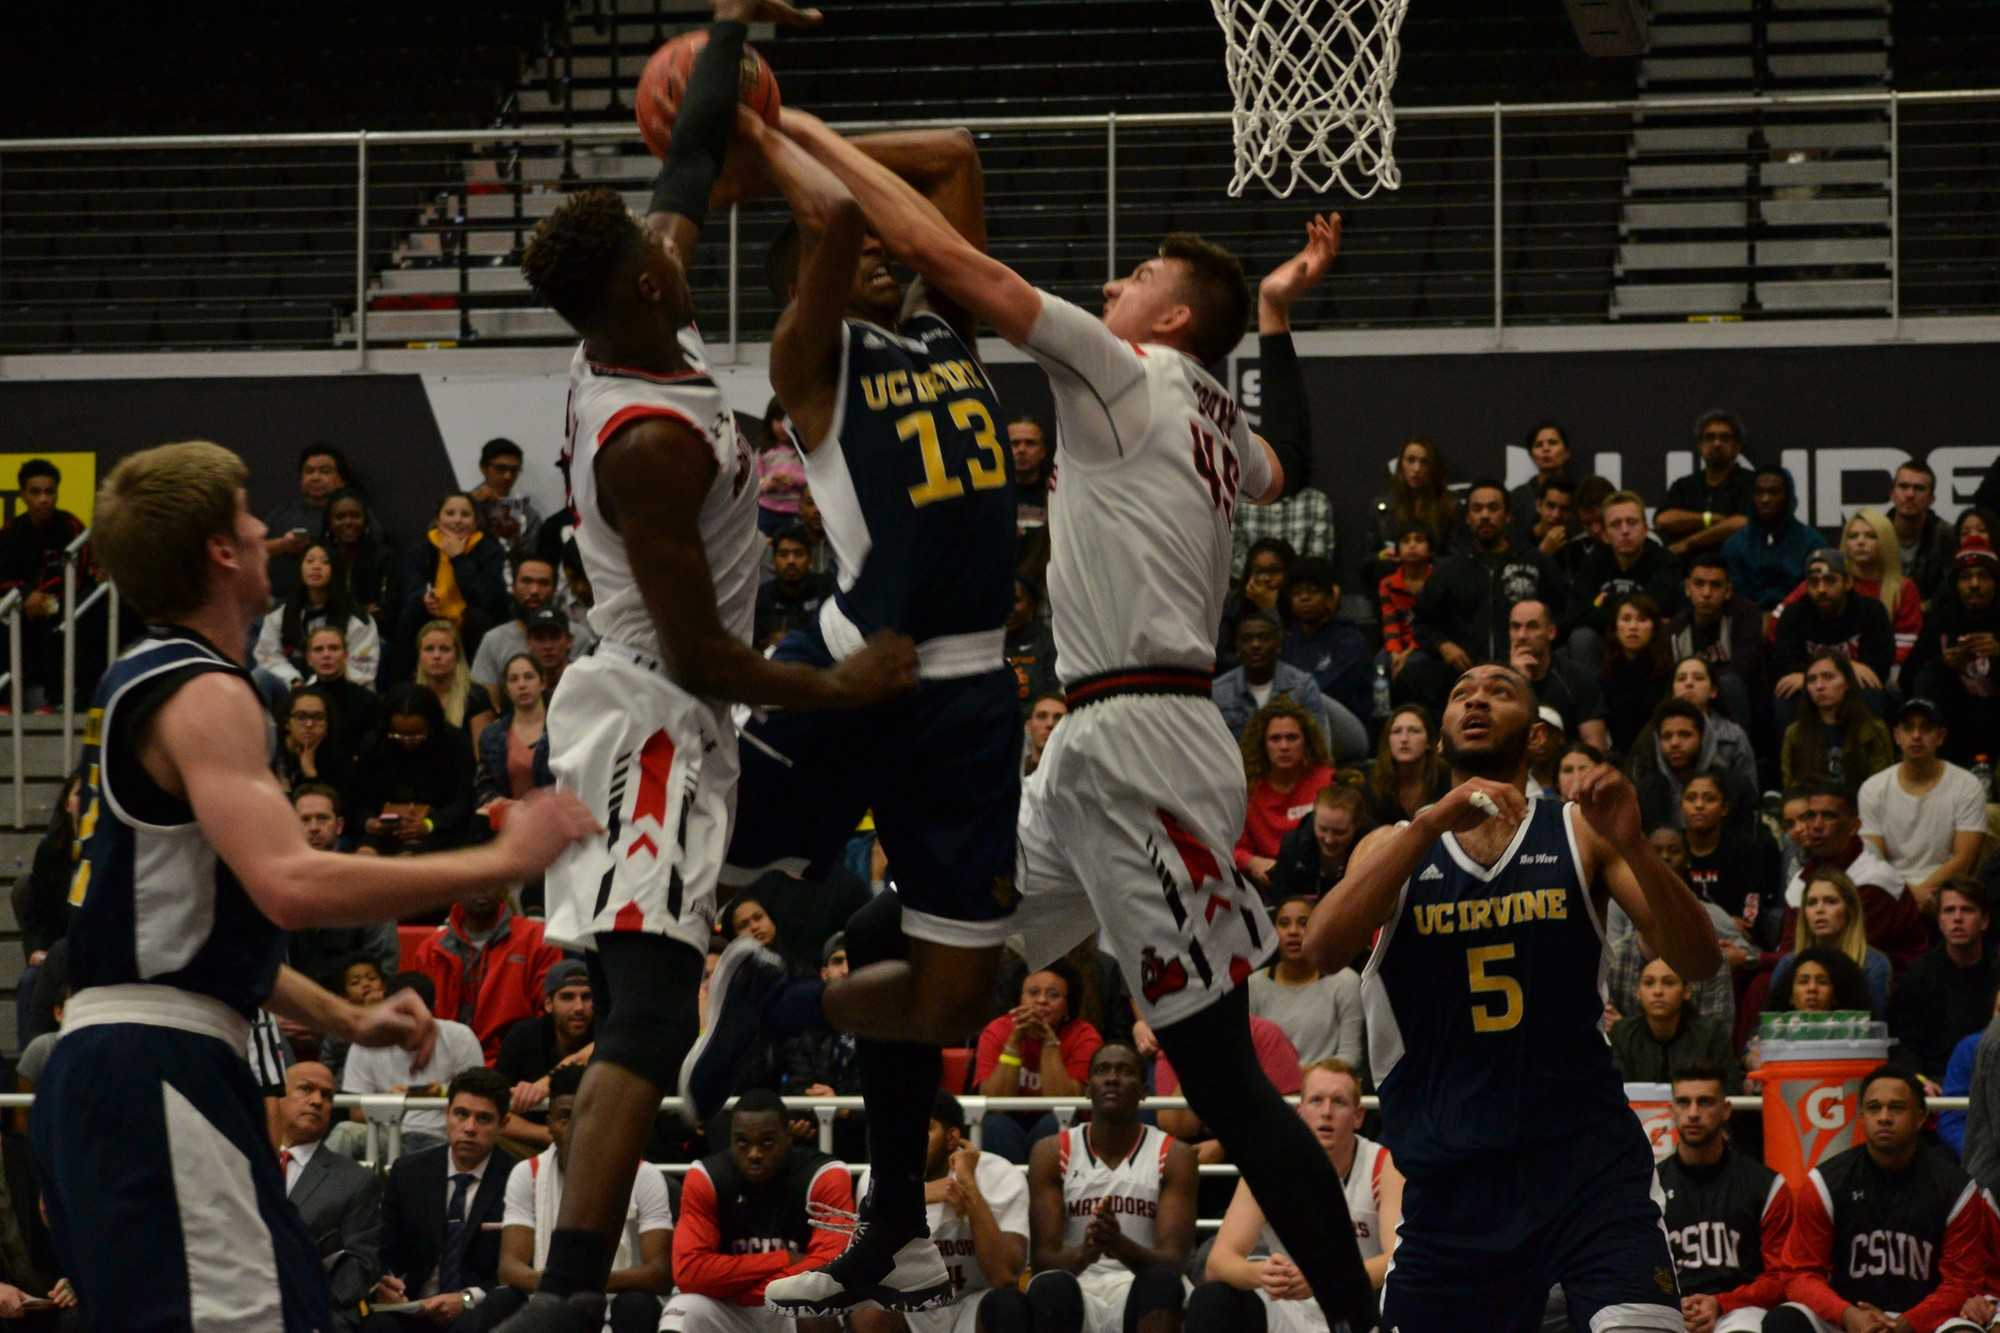 CSUN'S Junior forward, Tavrion Dawson(left) and CSUN'S Junior center, Dylan Johns(right), working together to defend a UC Irvine player at the game on Saturday, January 21st. Photo credit: Breaunne Pinckney